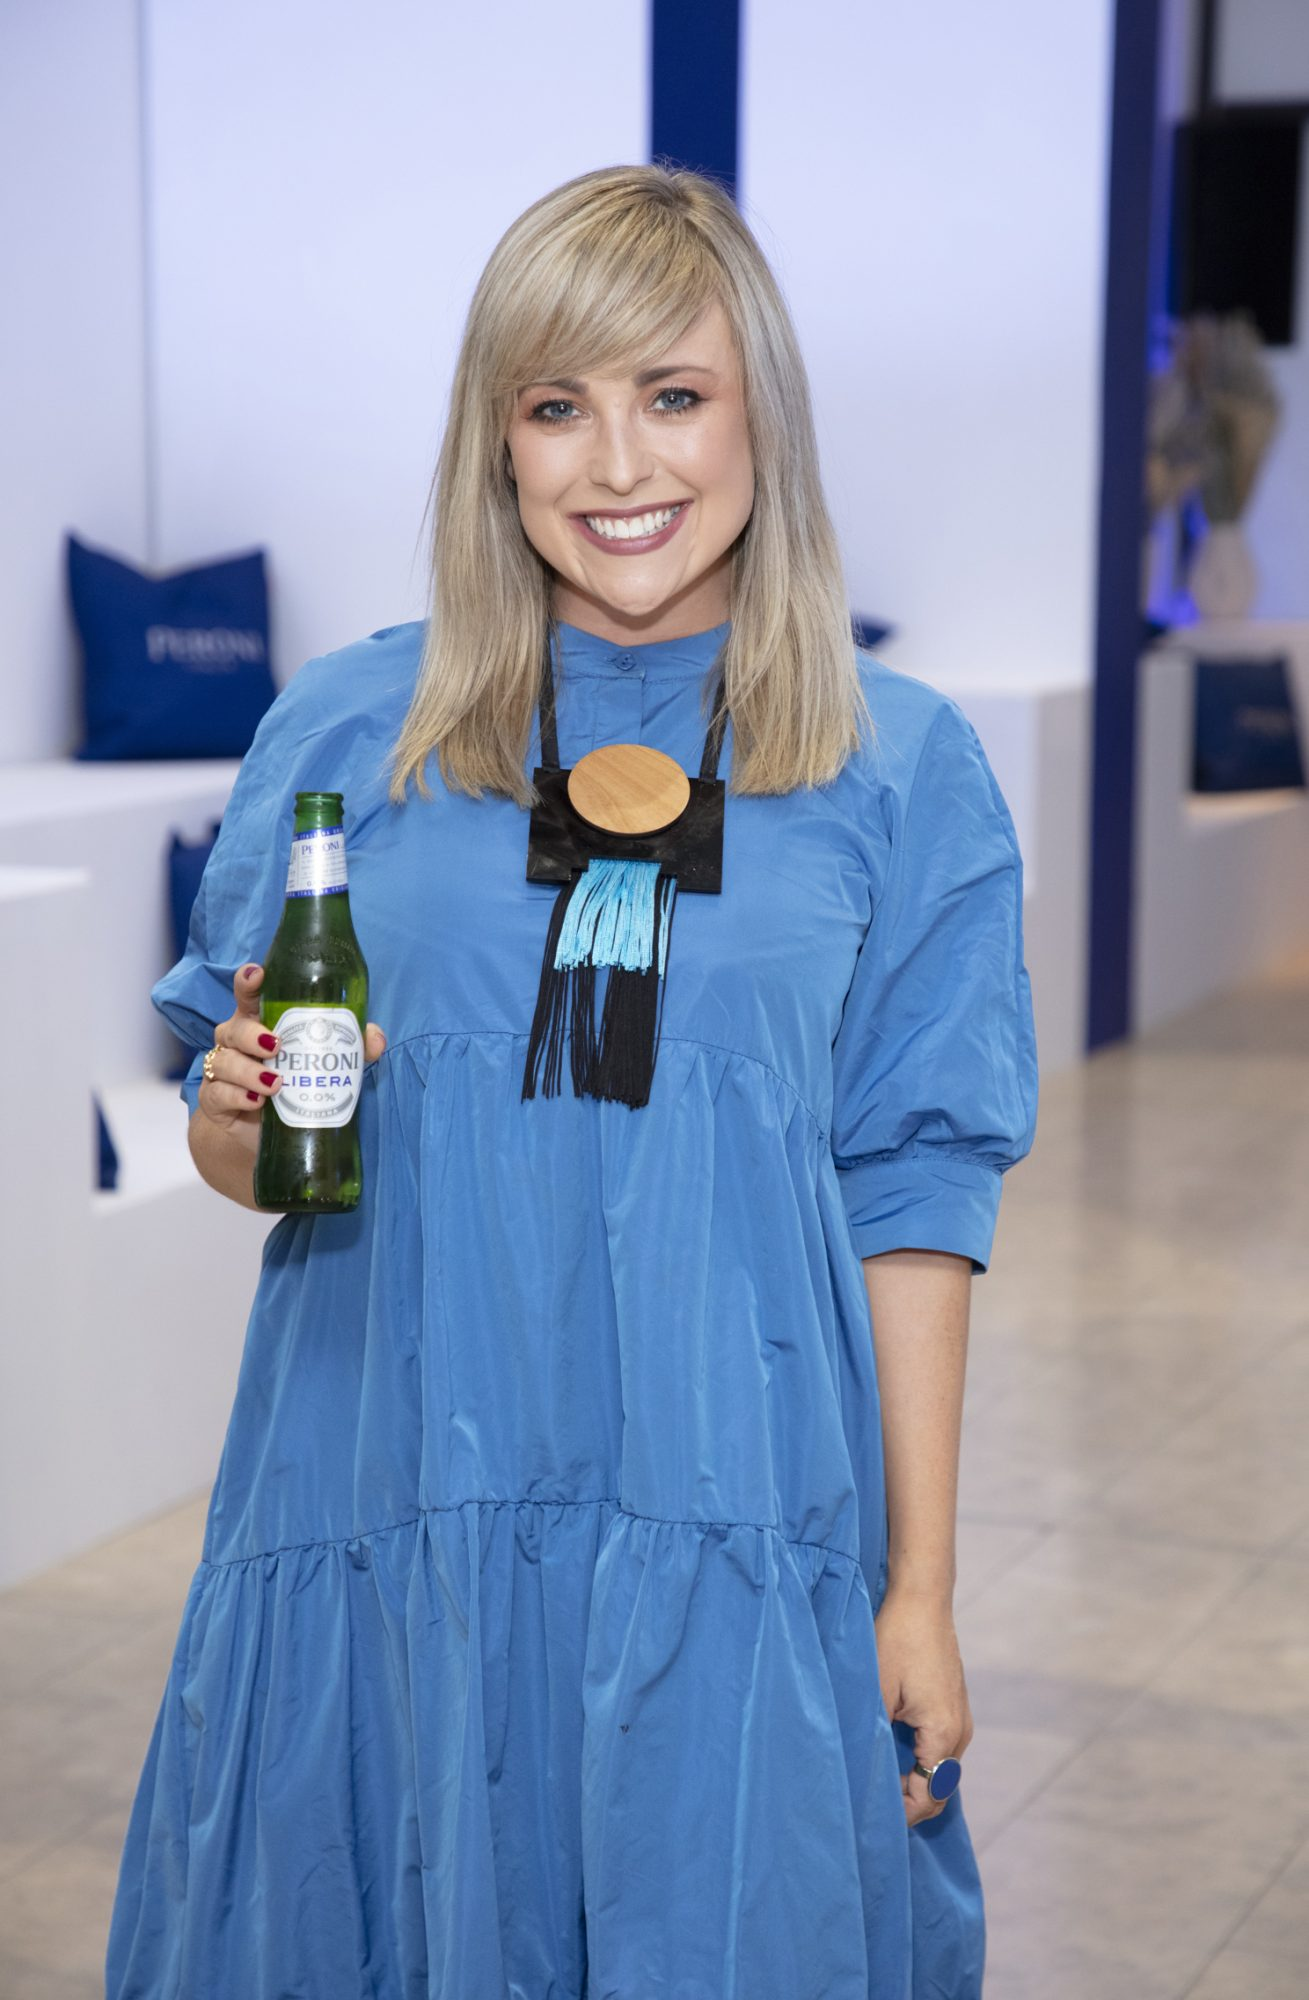 Roisin Lafferty pictured at the launch of The House of Peroni, which is open at the RHA in Dublin until Sunday, 1st September 2019. This year's residency sees the RHA transformed into a stylish Peroni inspired experience, filled with food, drink and design. www.thehouseofperoni.com Photo: Anthony Woods.